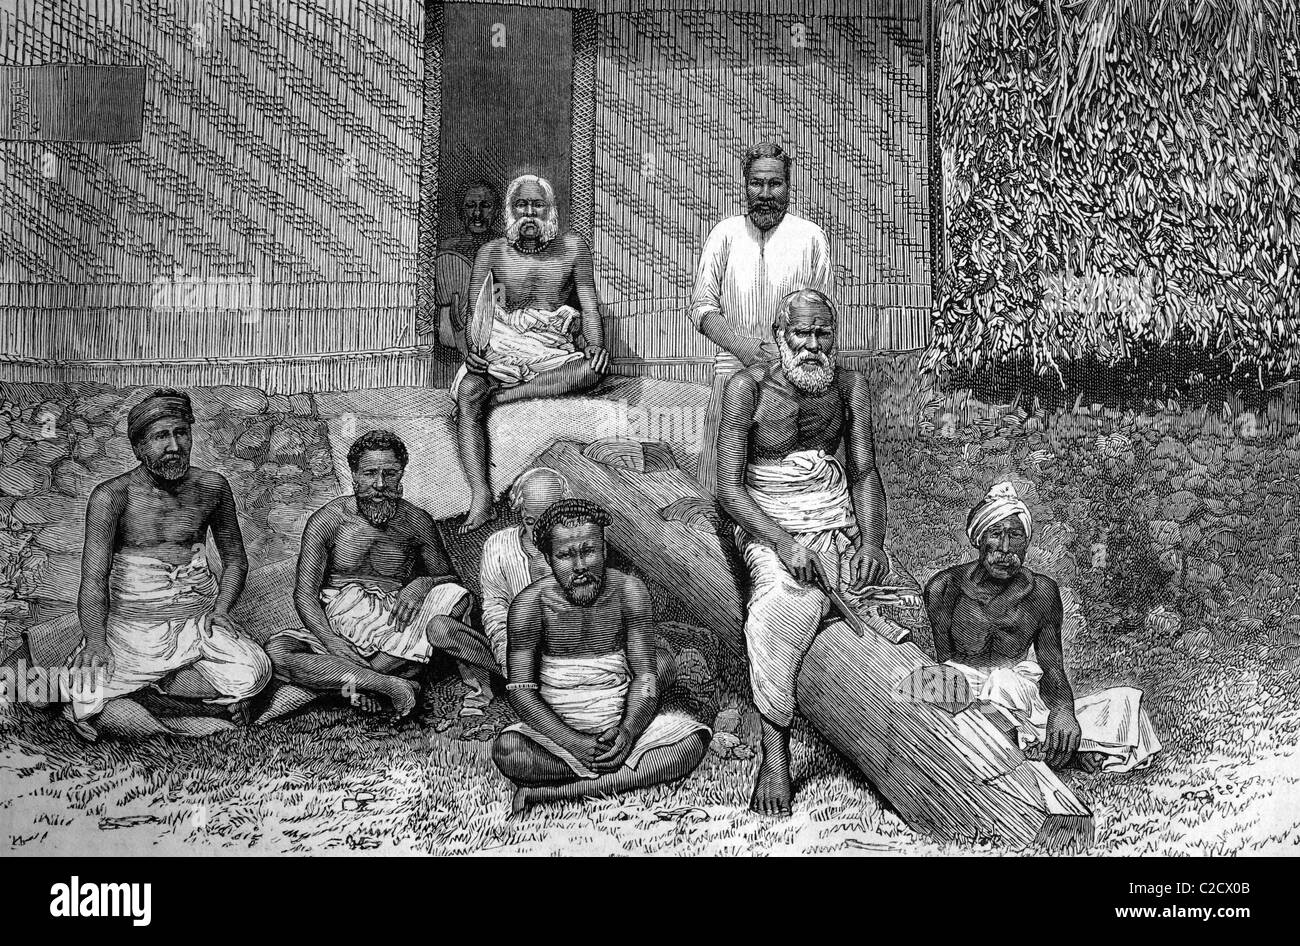 The late ex-king Cacobau of Fiji and his suite, historic image, 1883 - Stock Image